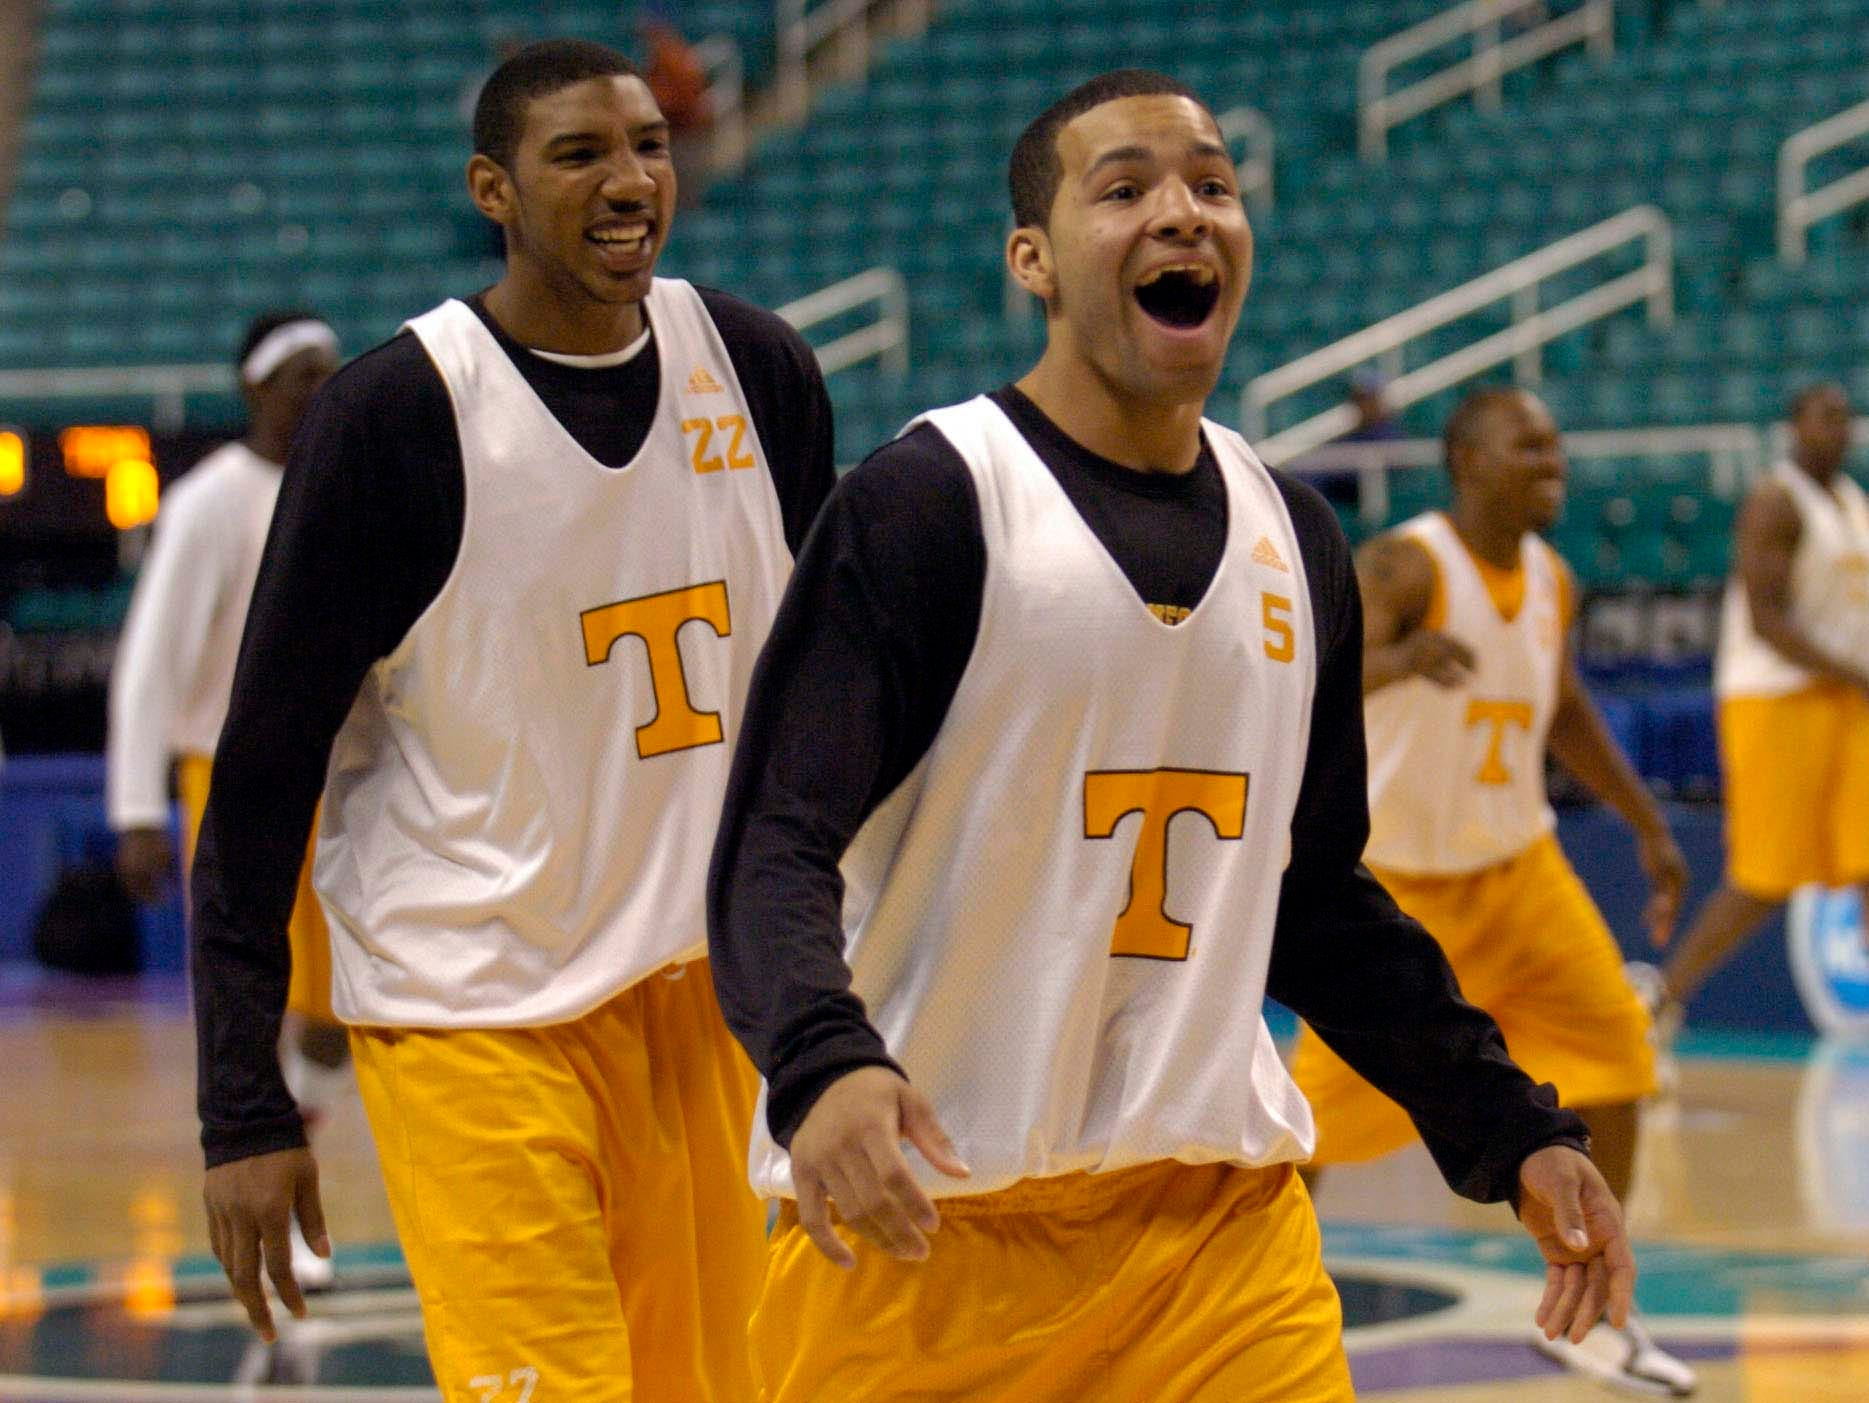 Tennessee teammates Chris Lofton (right) and Andre Patterson share a laugh during practice Wednesday at the Greensboro, N.C., Coliseum. UT will face Winthrop in the opening round of the 2006 NCAA tournament on Thursday.